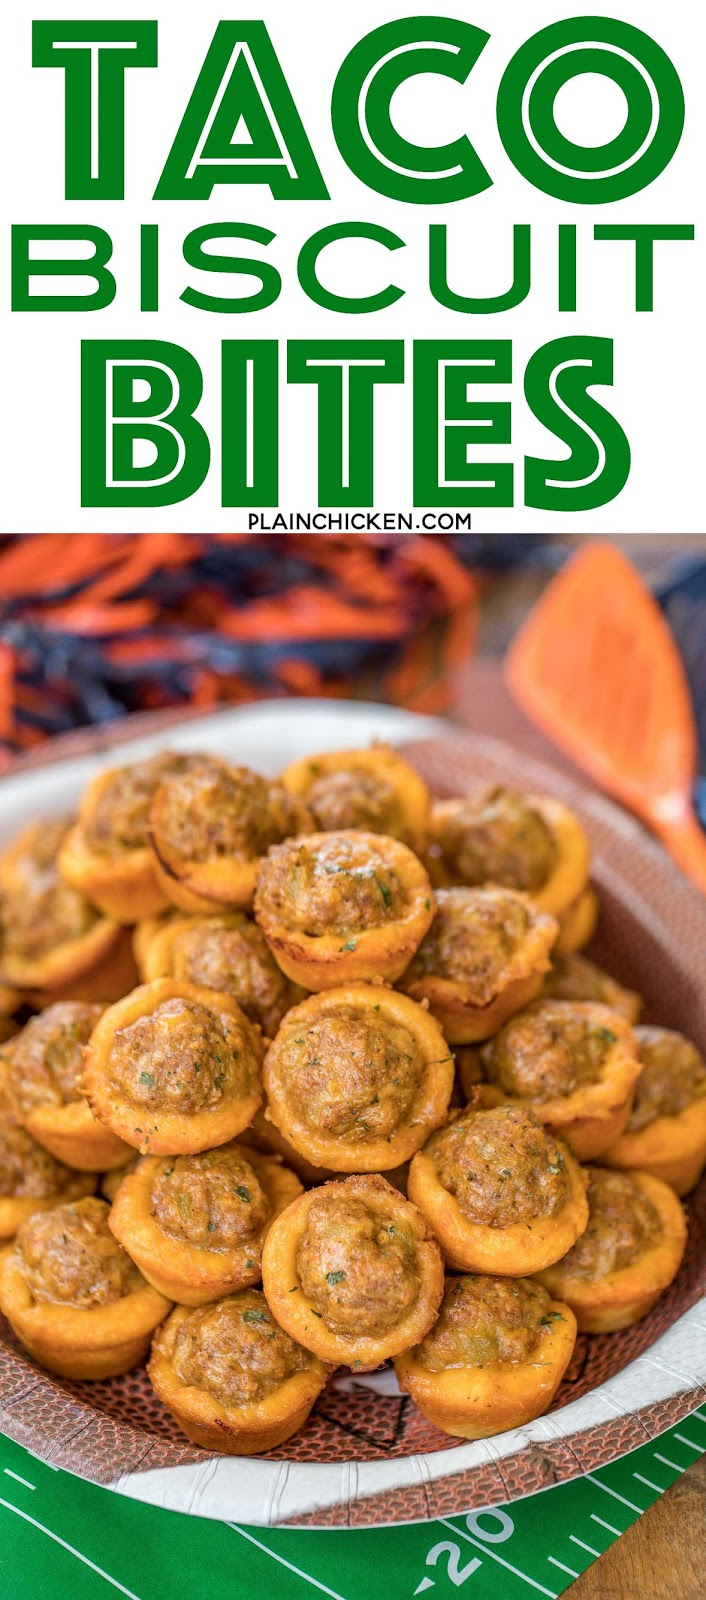 Taco Biscuit Bites Recipe - taco seasoned sausage, green chiles and cheese baked in mini biscuit cups! SERIOUSLY delicious! Great for parties and tailgates!!! Can make ahead for easy entertaining. Only 5 ingredients and ready to eat in 15 minutes! Dip in salsa and/or ranch. These things FLY off the plate!